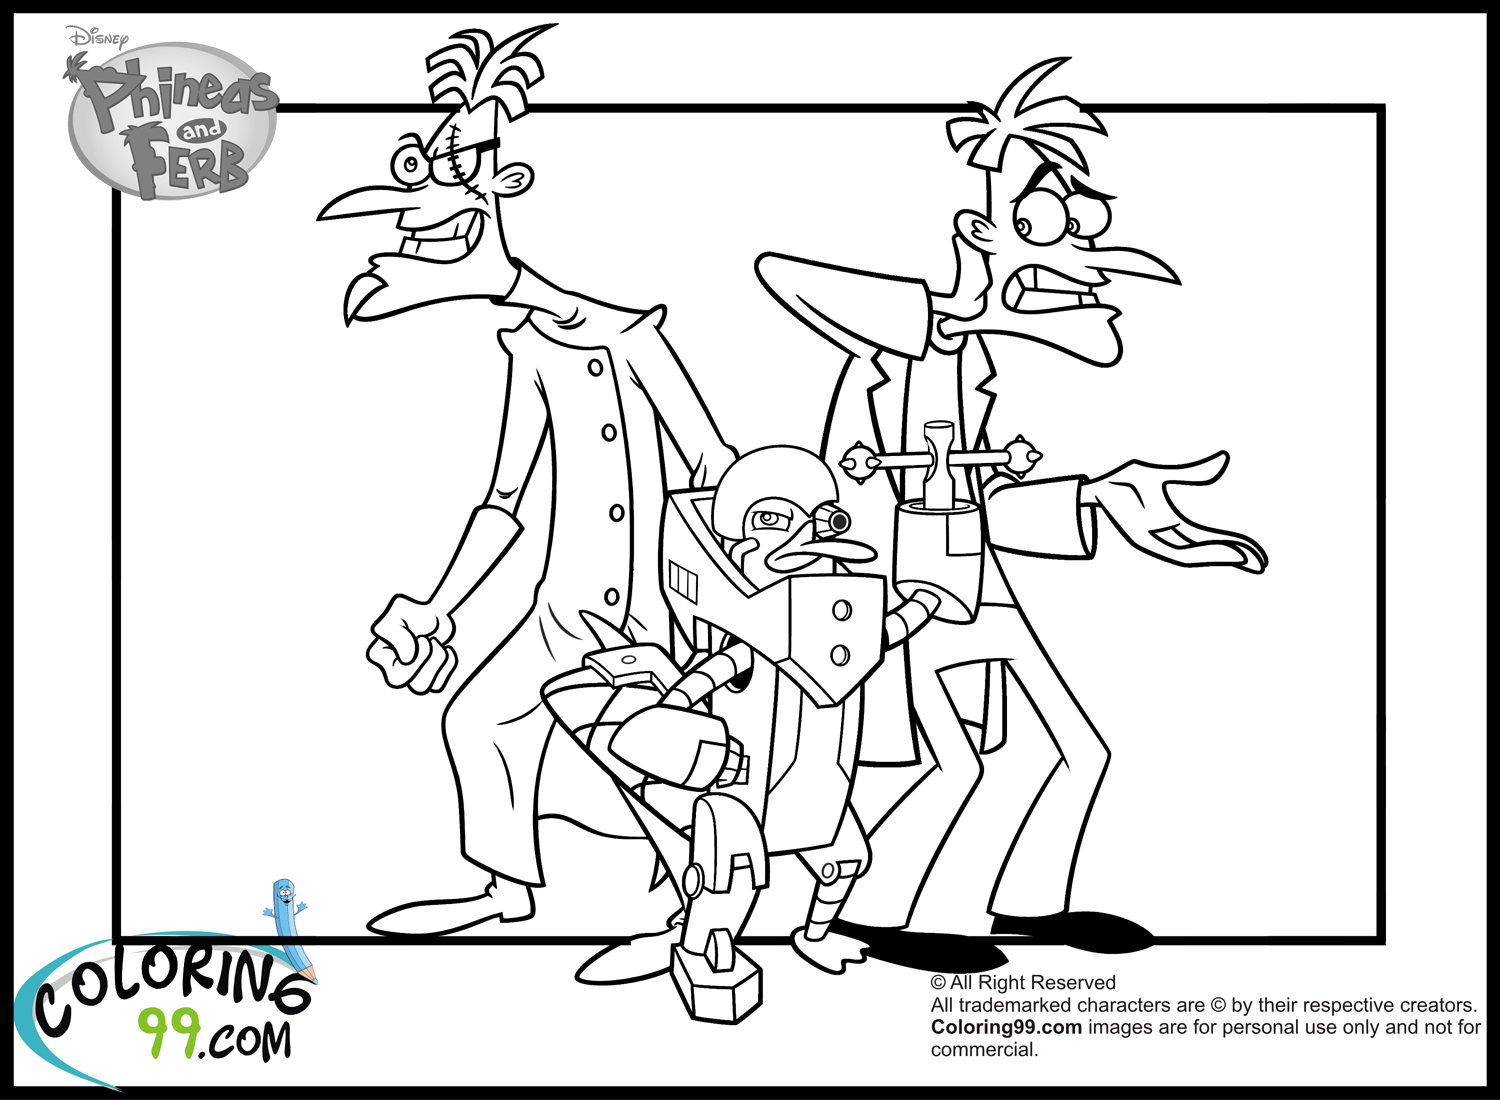 ferb and phineas coloring pages - photo#30